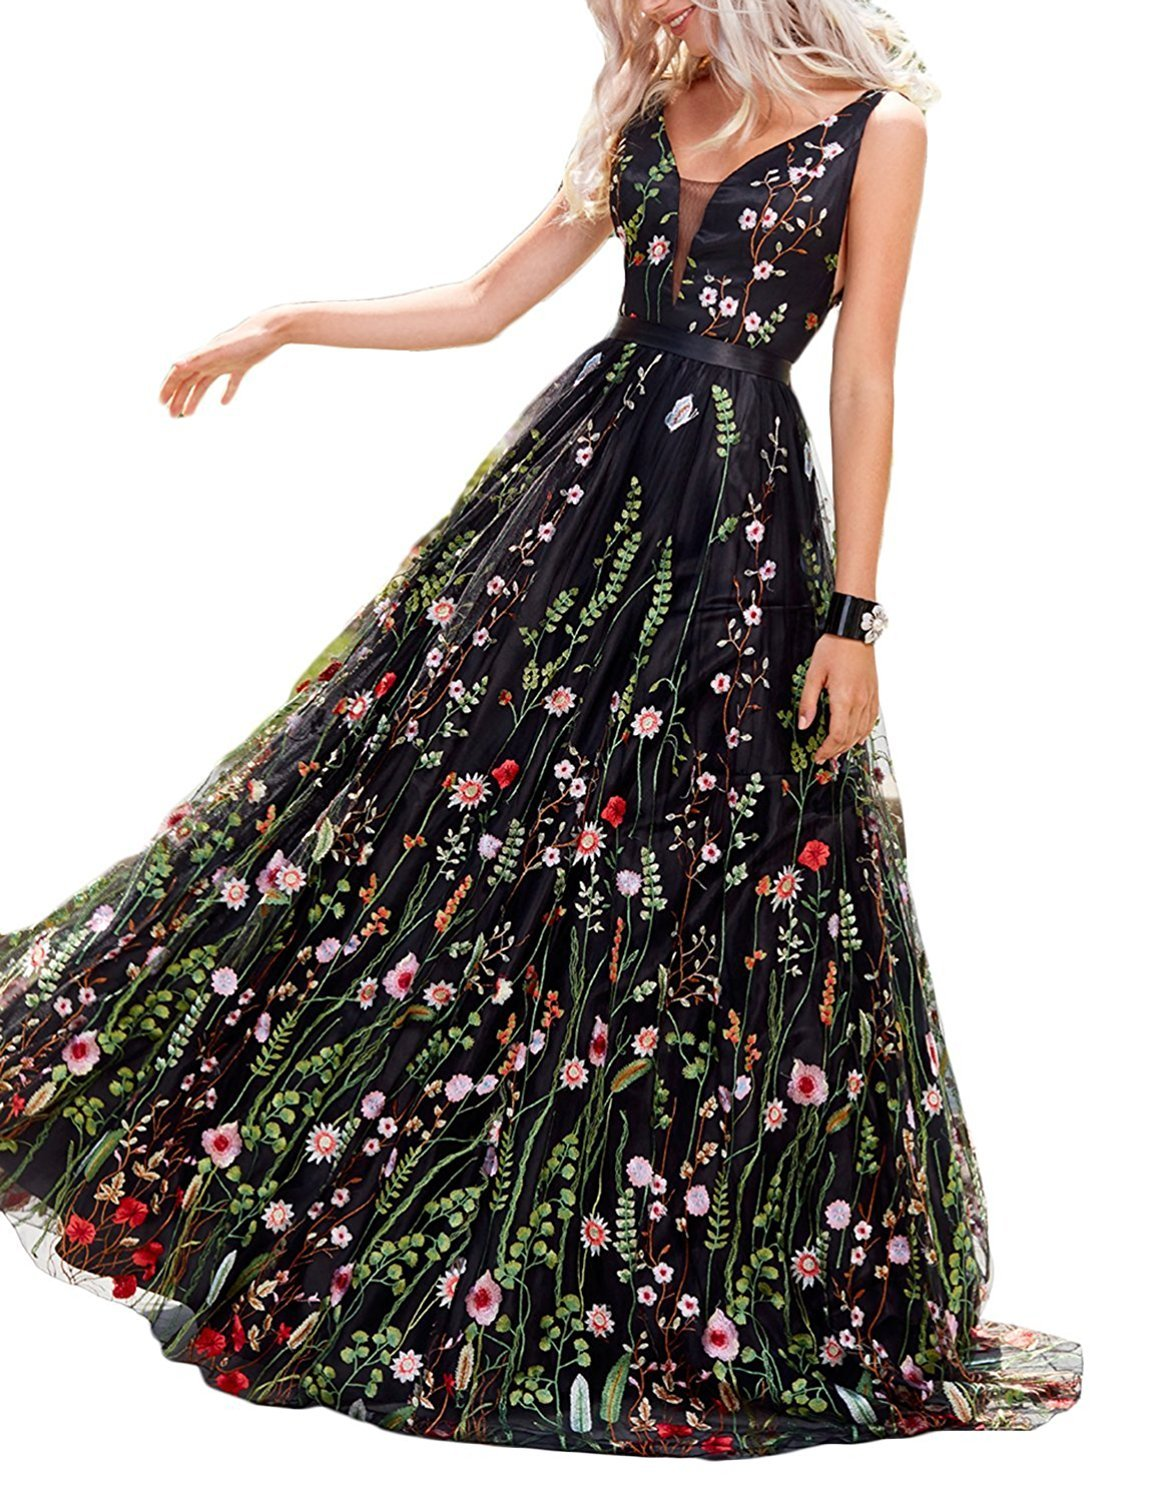 Women's Black Ball Gown Embroidery Prom Dress Floral Print Long Evening Dresses